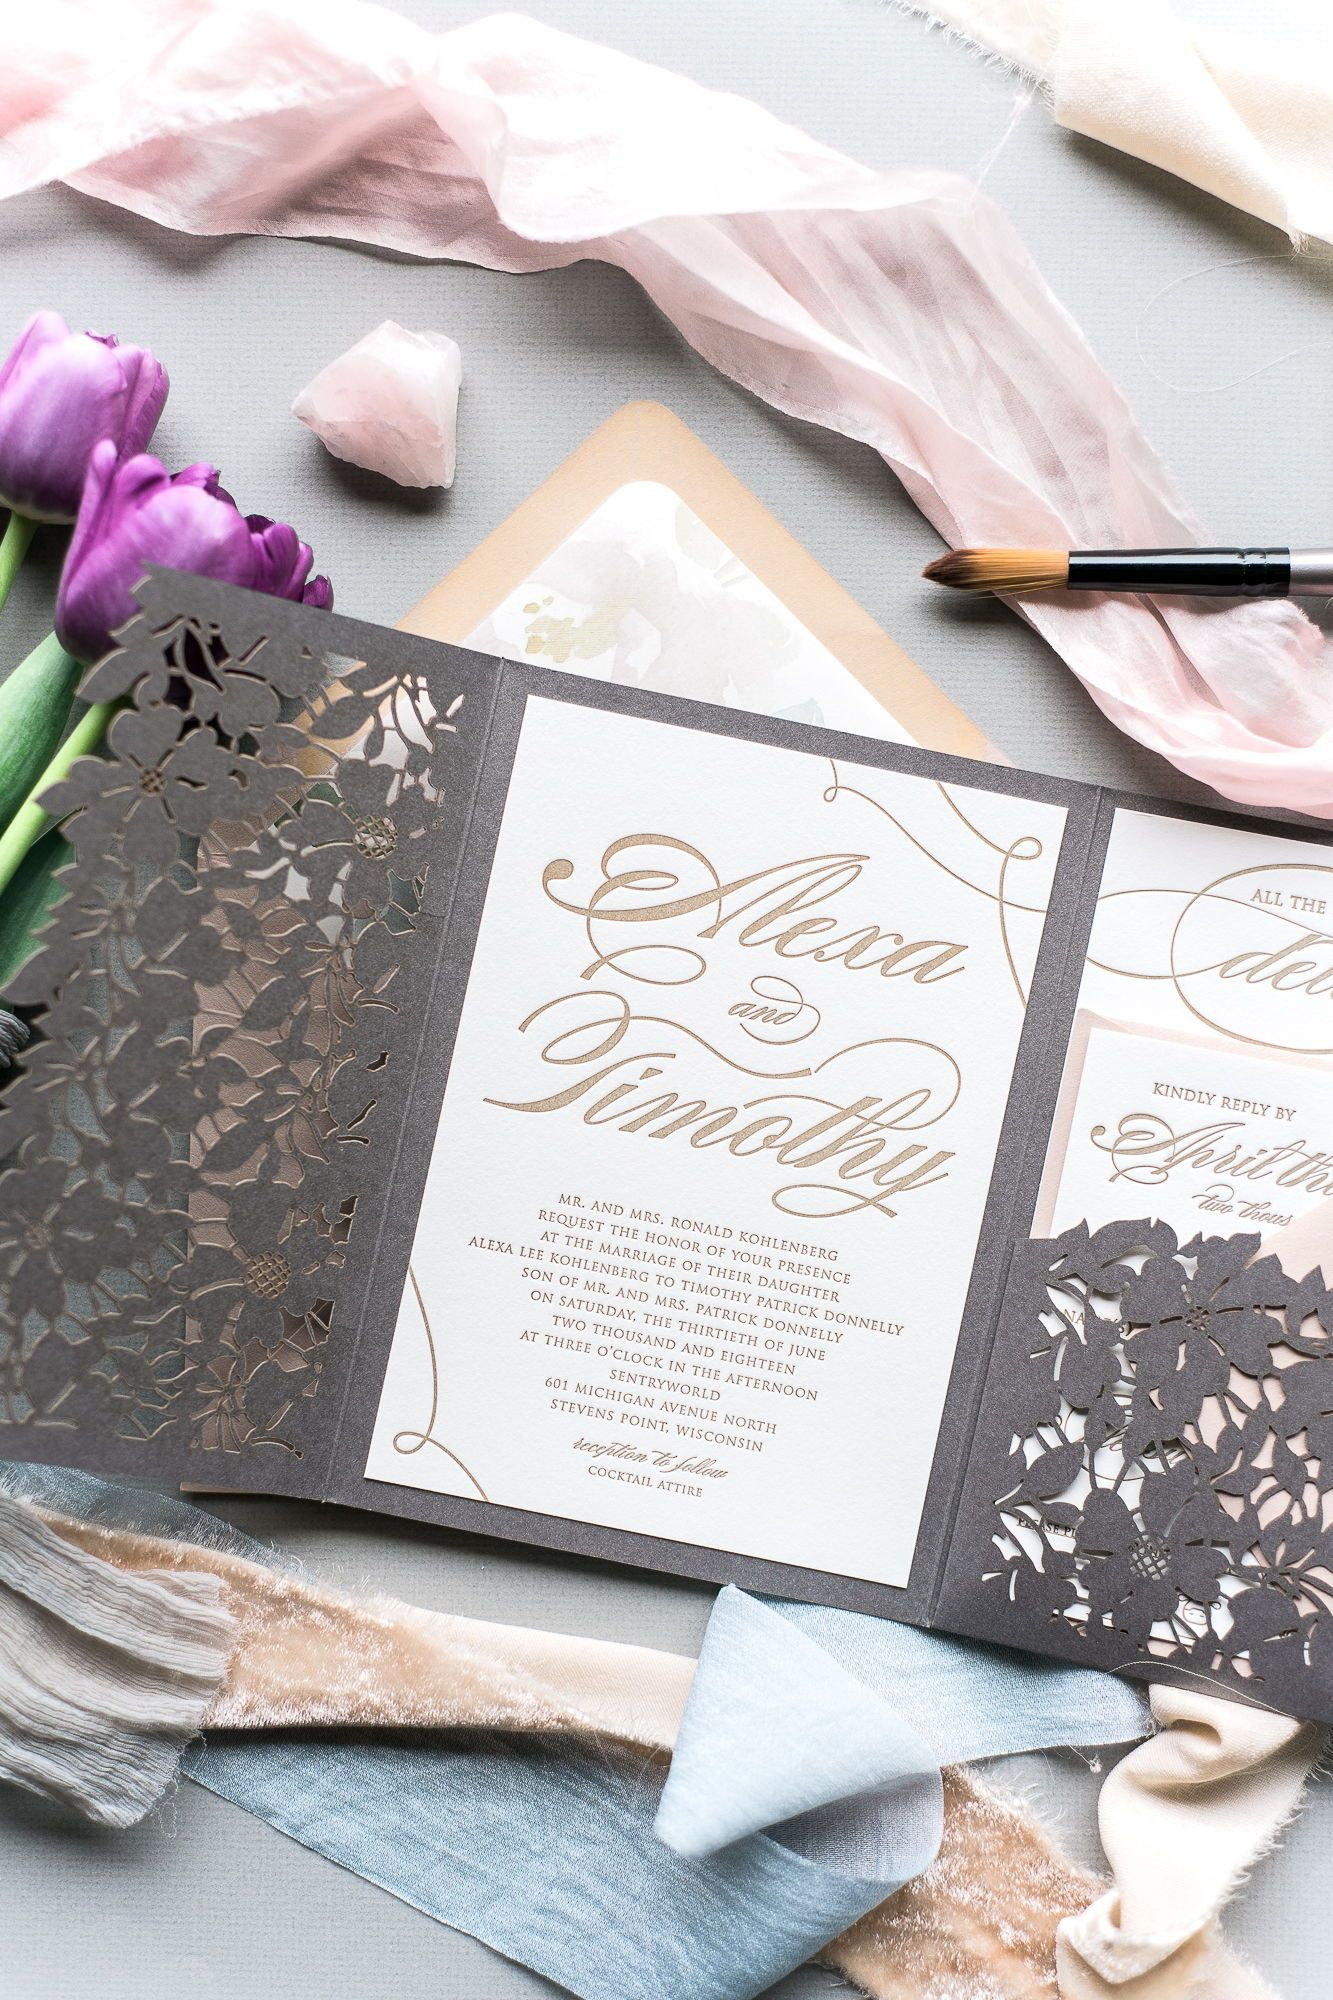 Pin On Wedding Invitations And Stationery Items